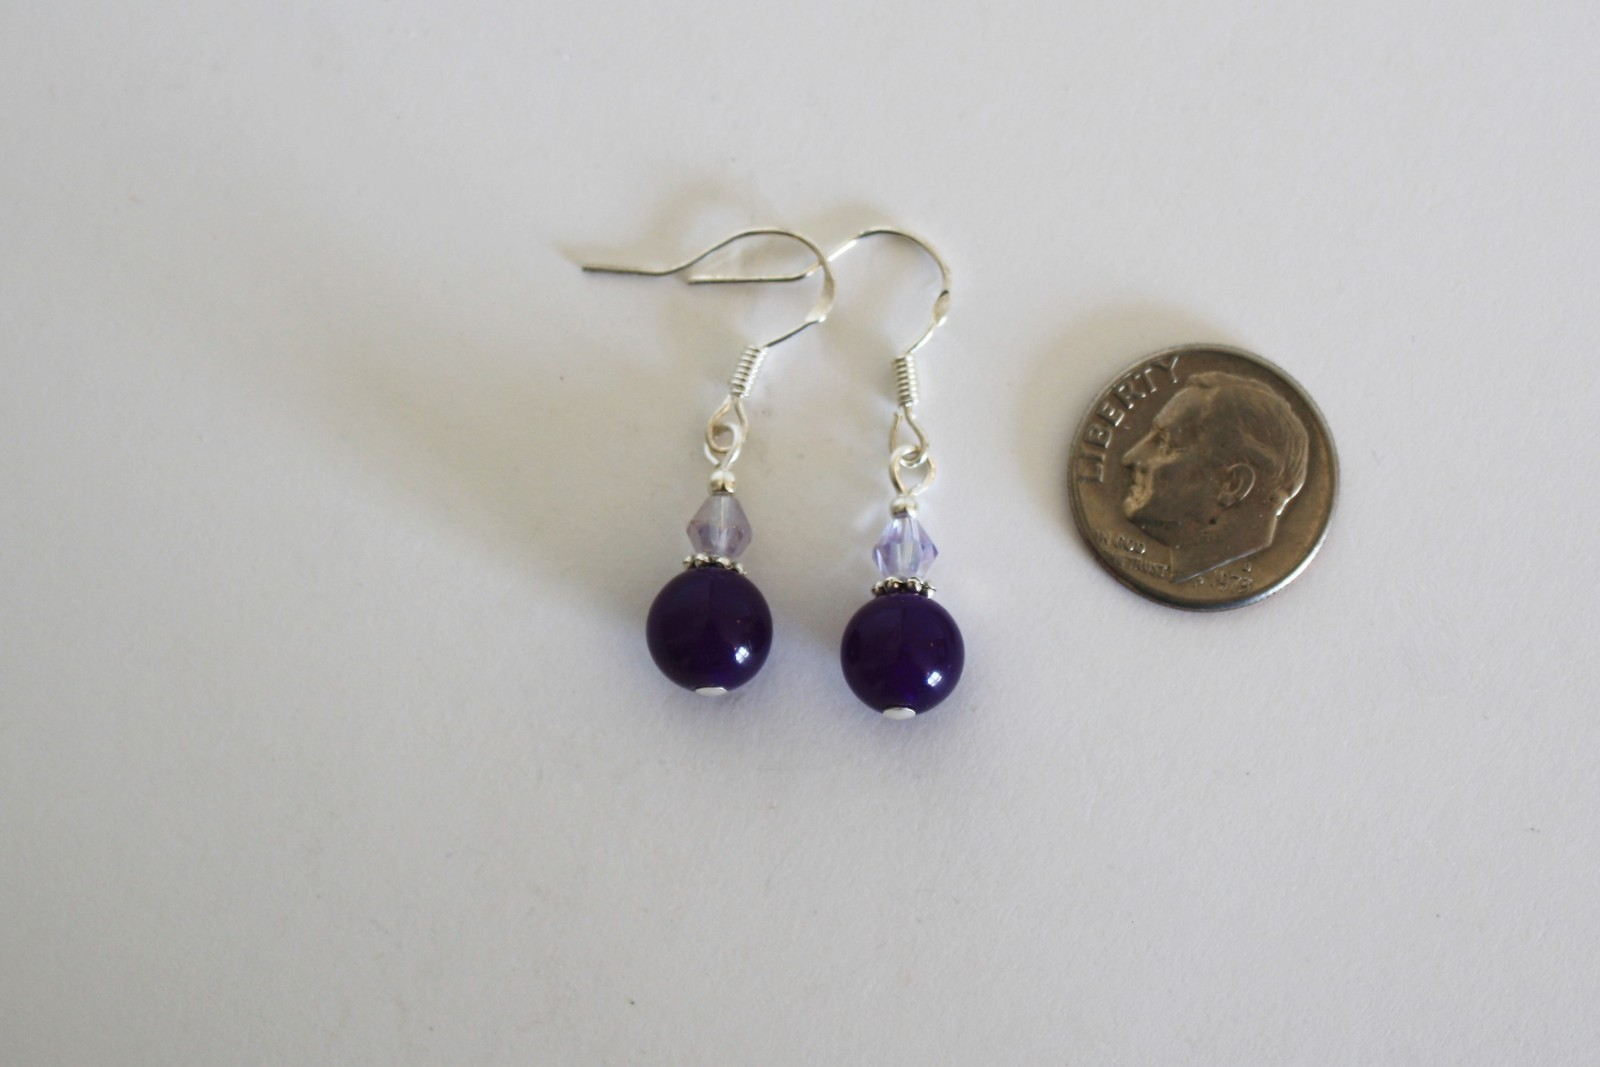 Turquoise, Amethyst, Lapis, Crystal Waterfall Necklacle and Amethyst Earrings